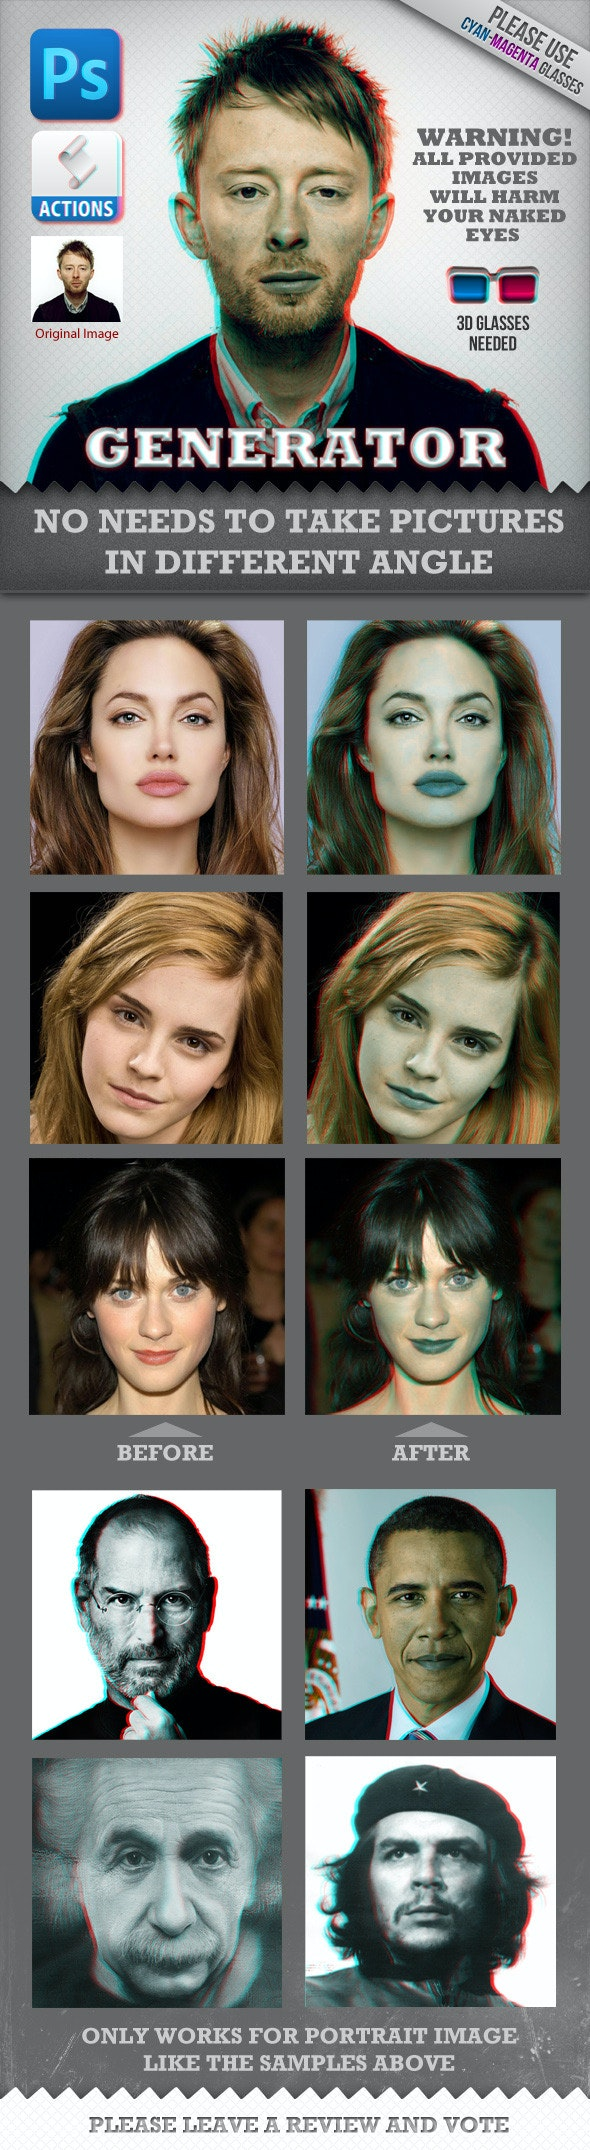 Anaglyph 3D Face Generator (Real Works) - Utilities Actions